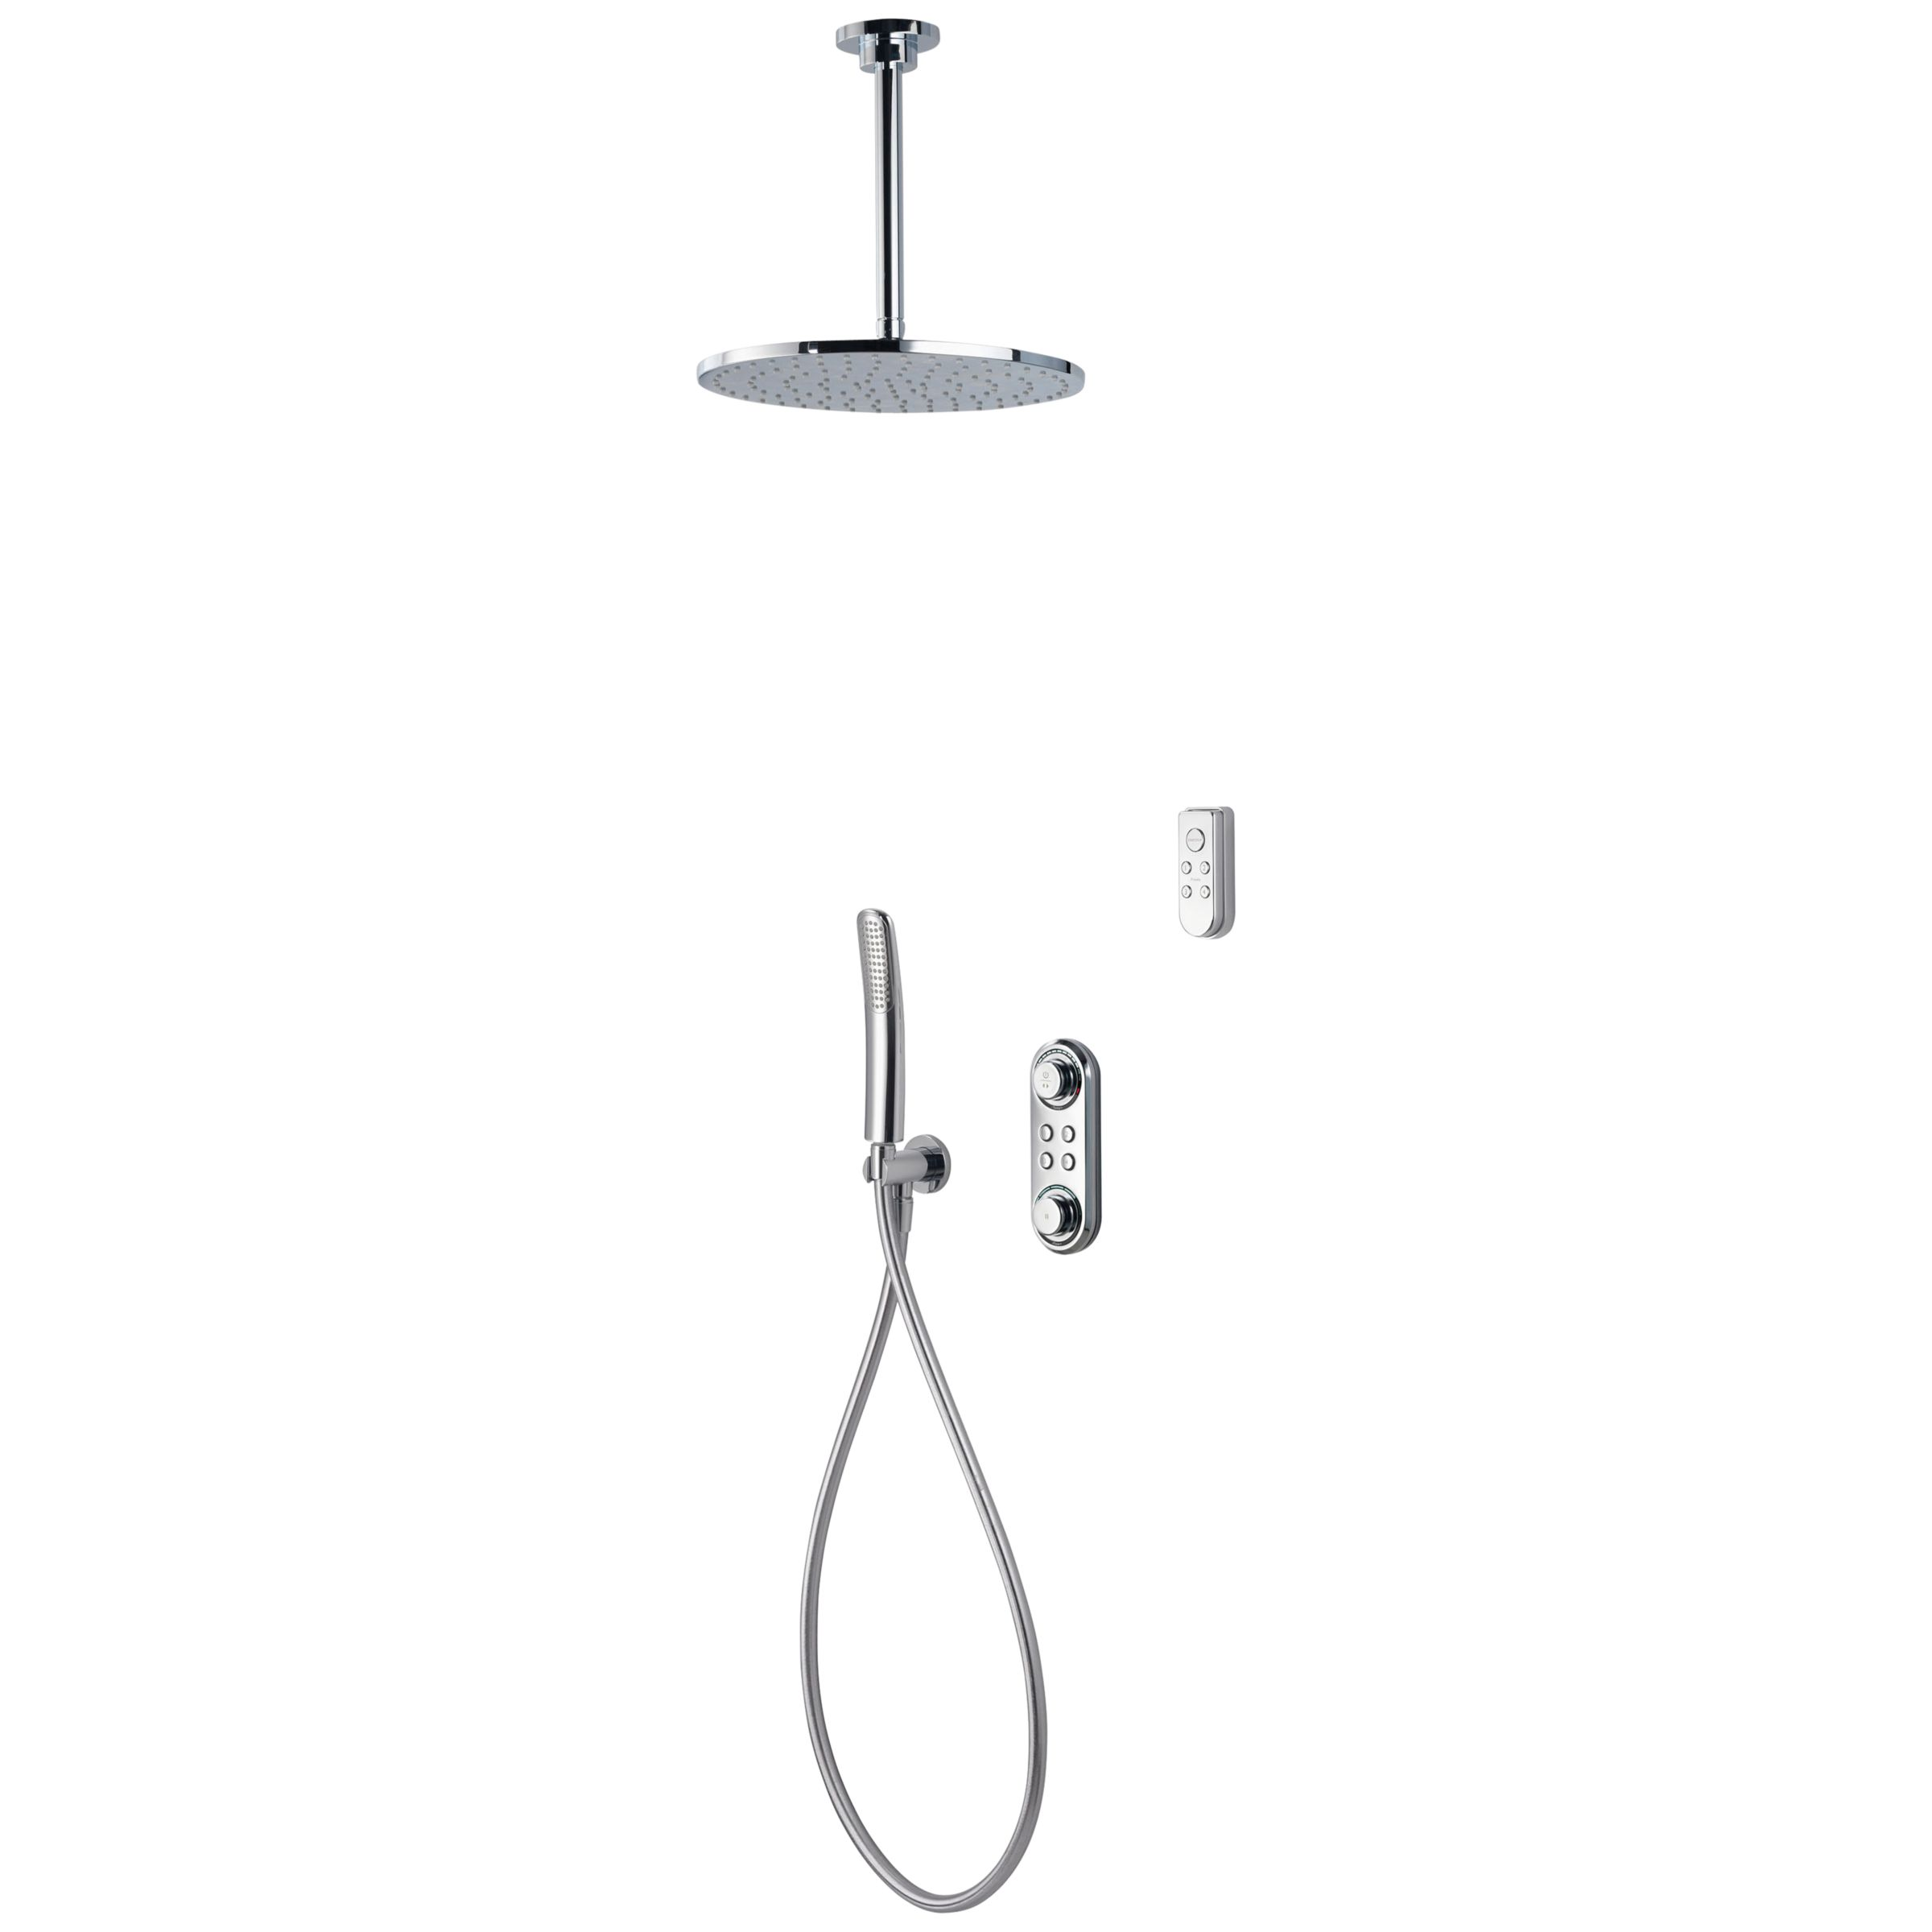 Aqualisa Ilux Xt Digital Concealed Gravity Pumped Shower With Ceiling Fixed Head Diverter And Handshower